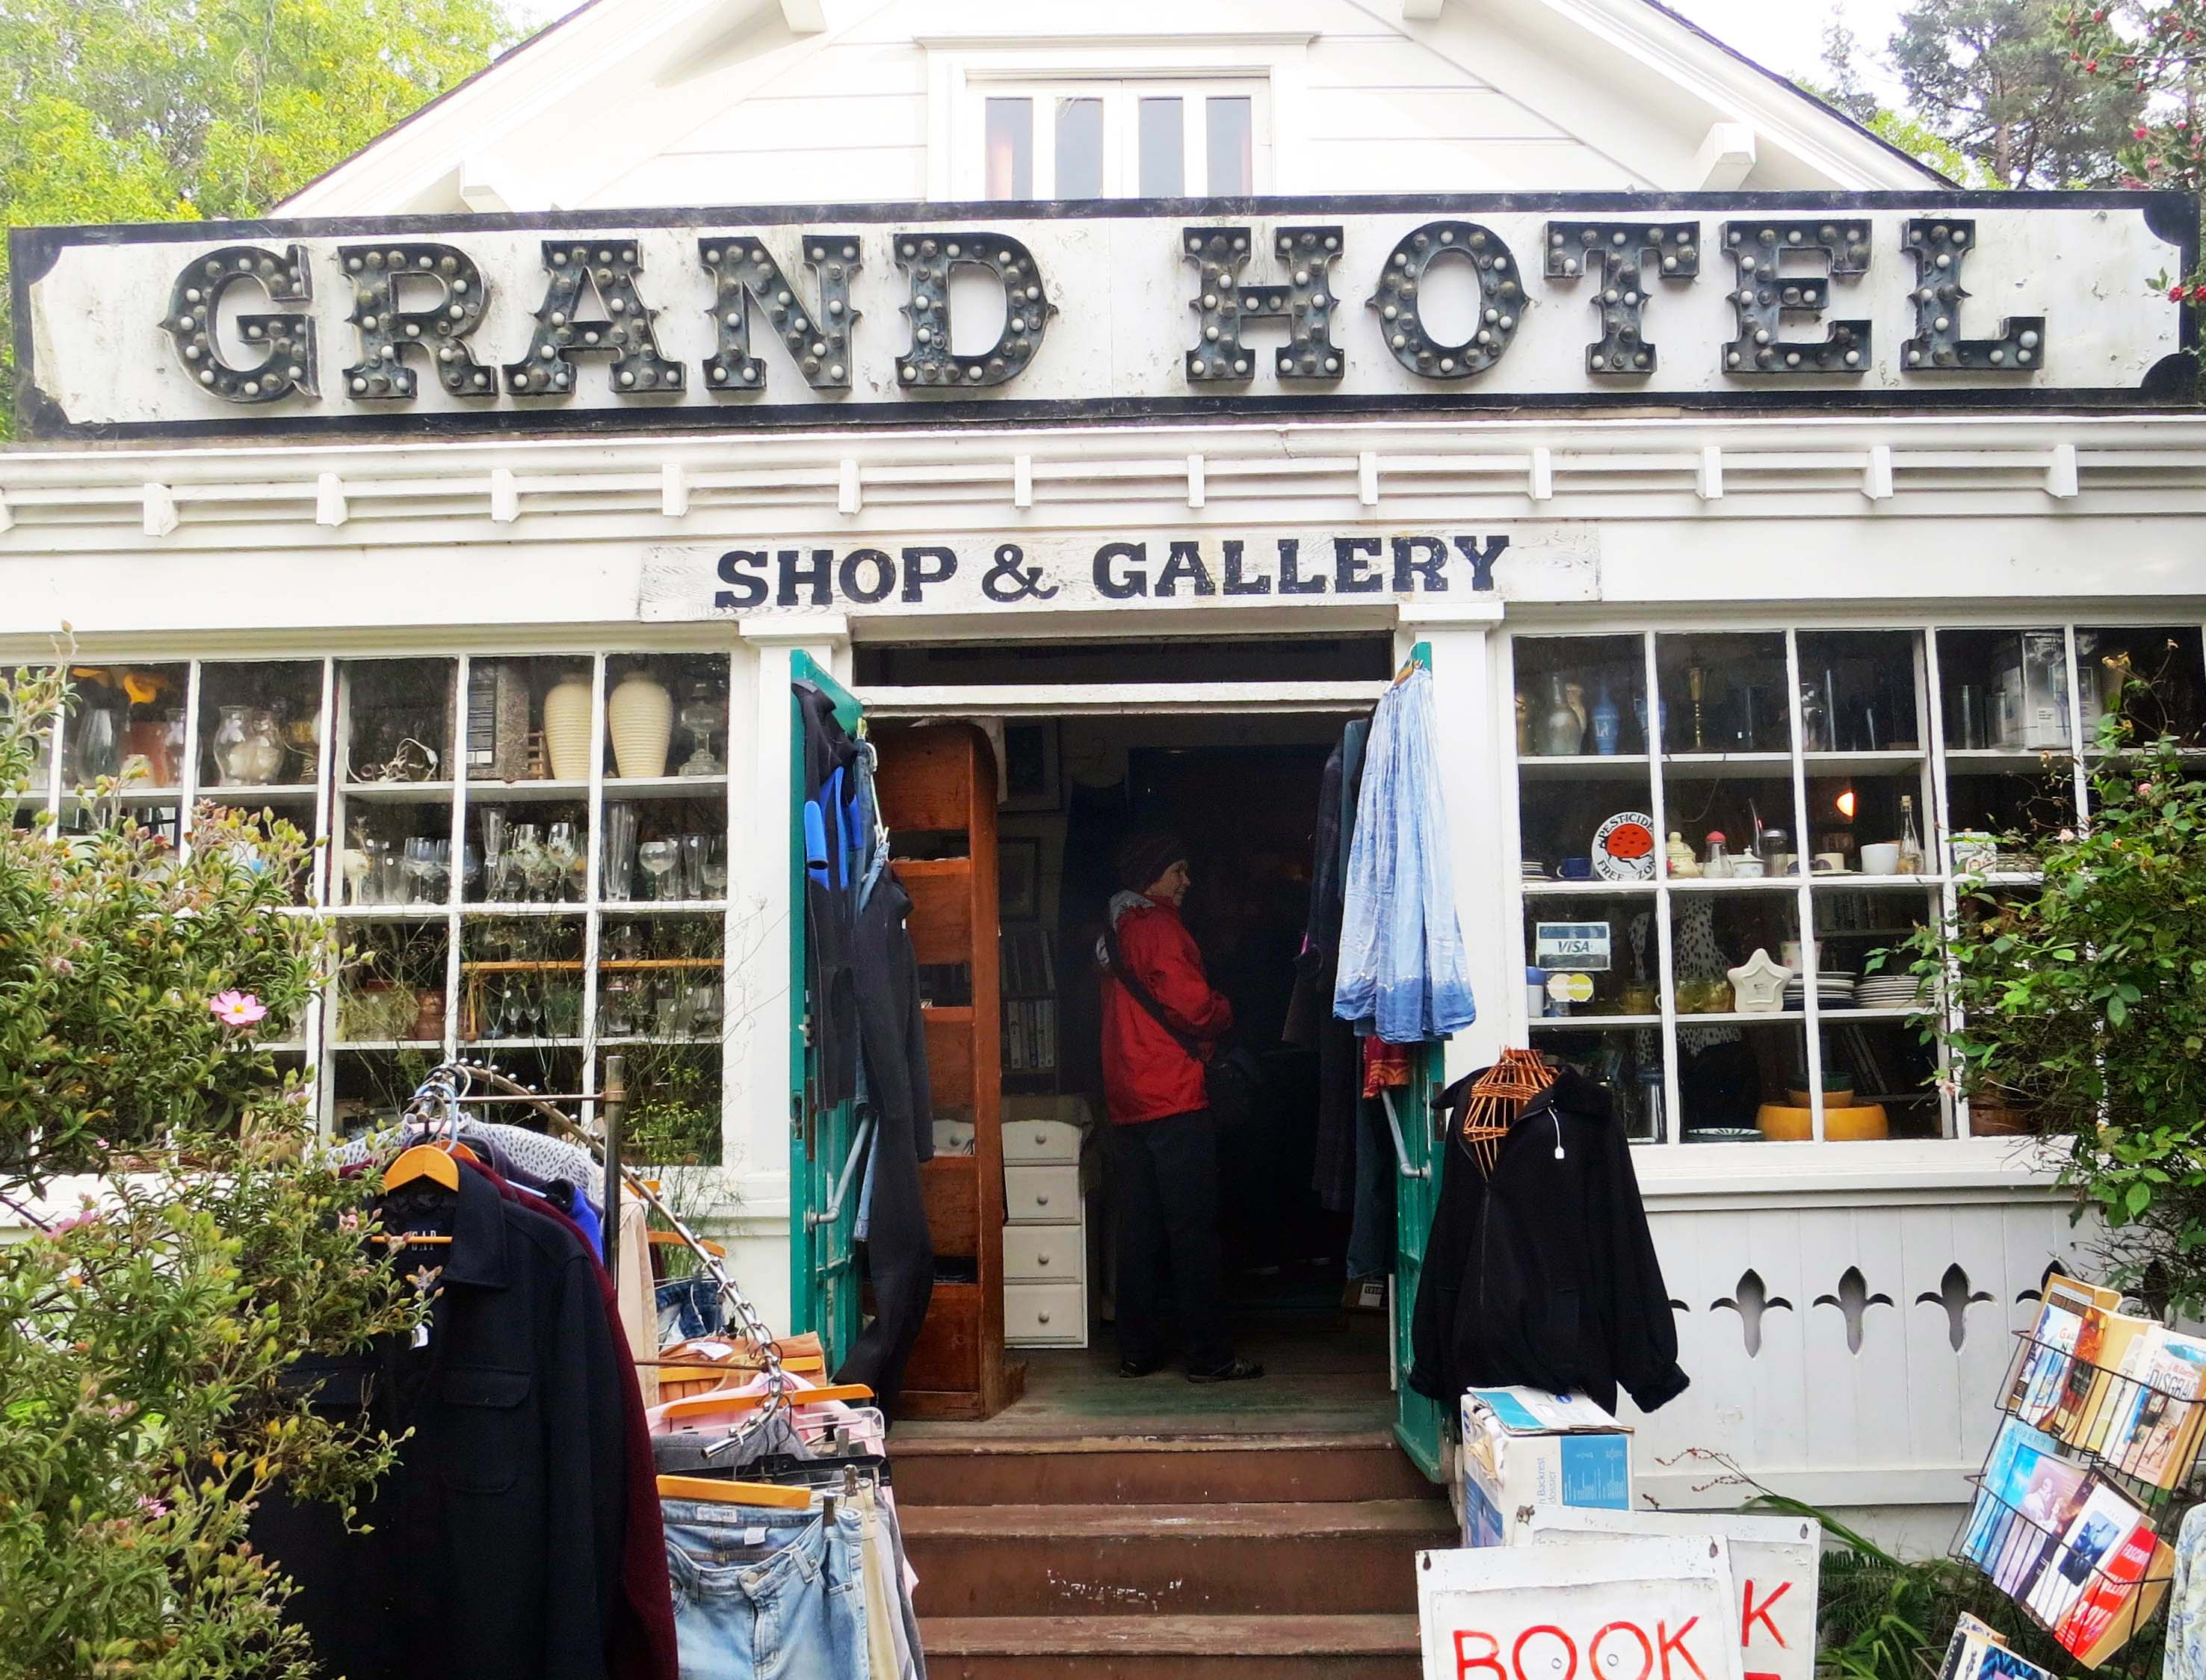 The Grand Hotel Shop and Gallery in Bolinas, California. Photo by Curtis Mekemson.